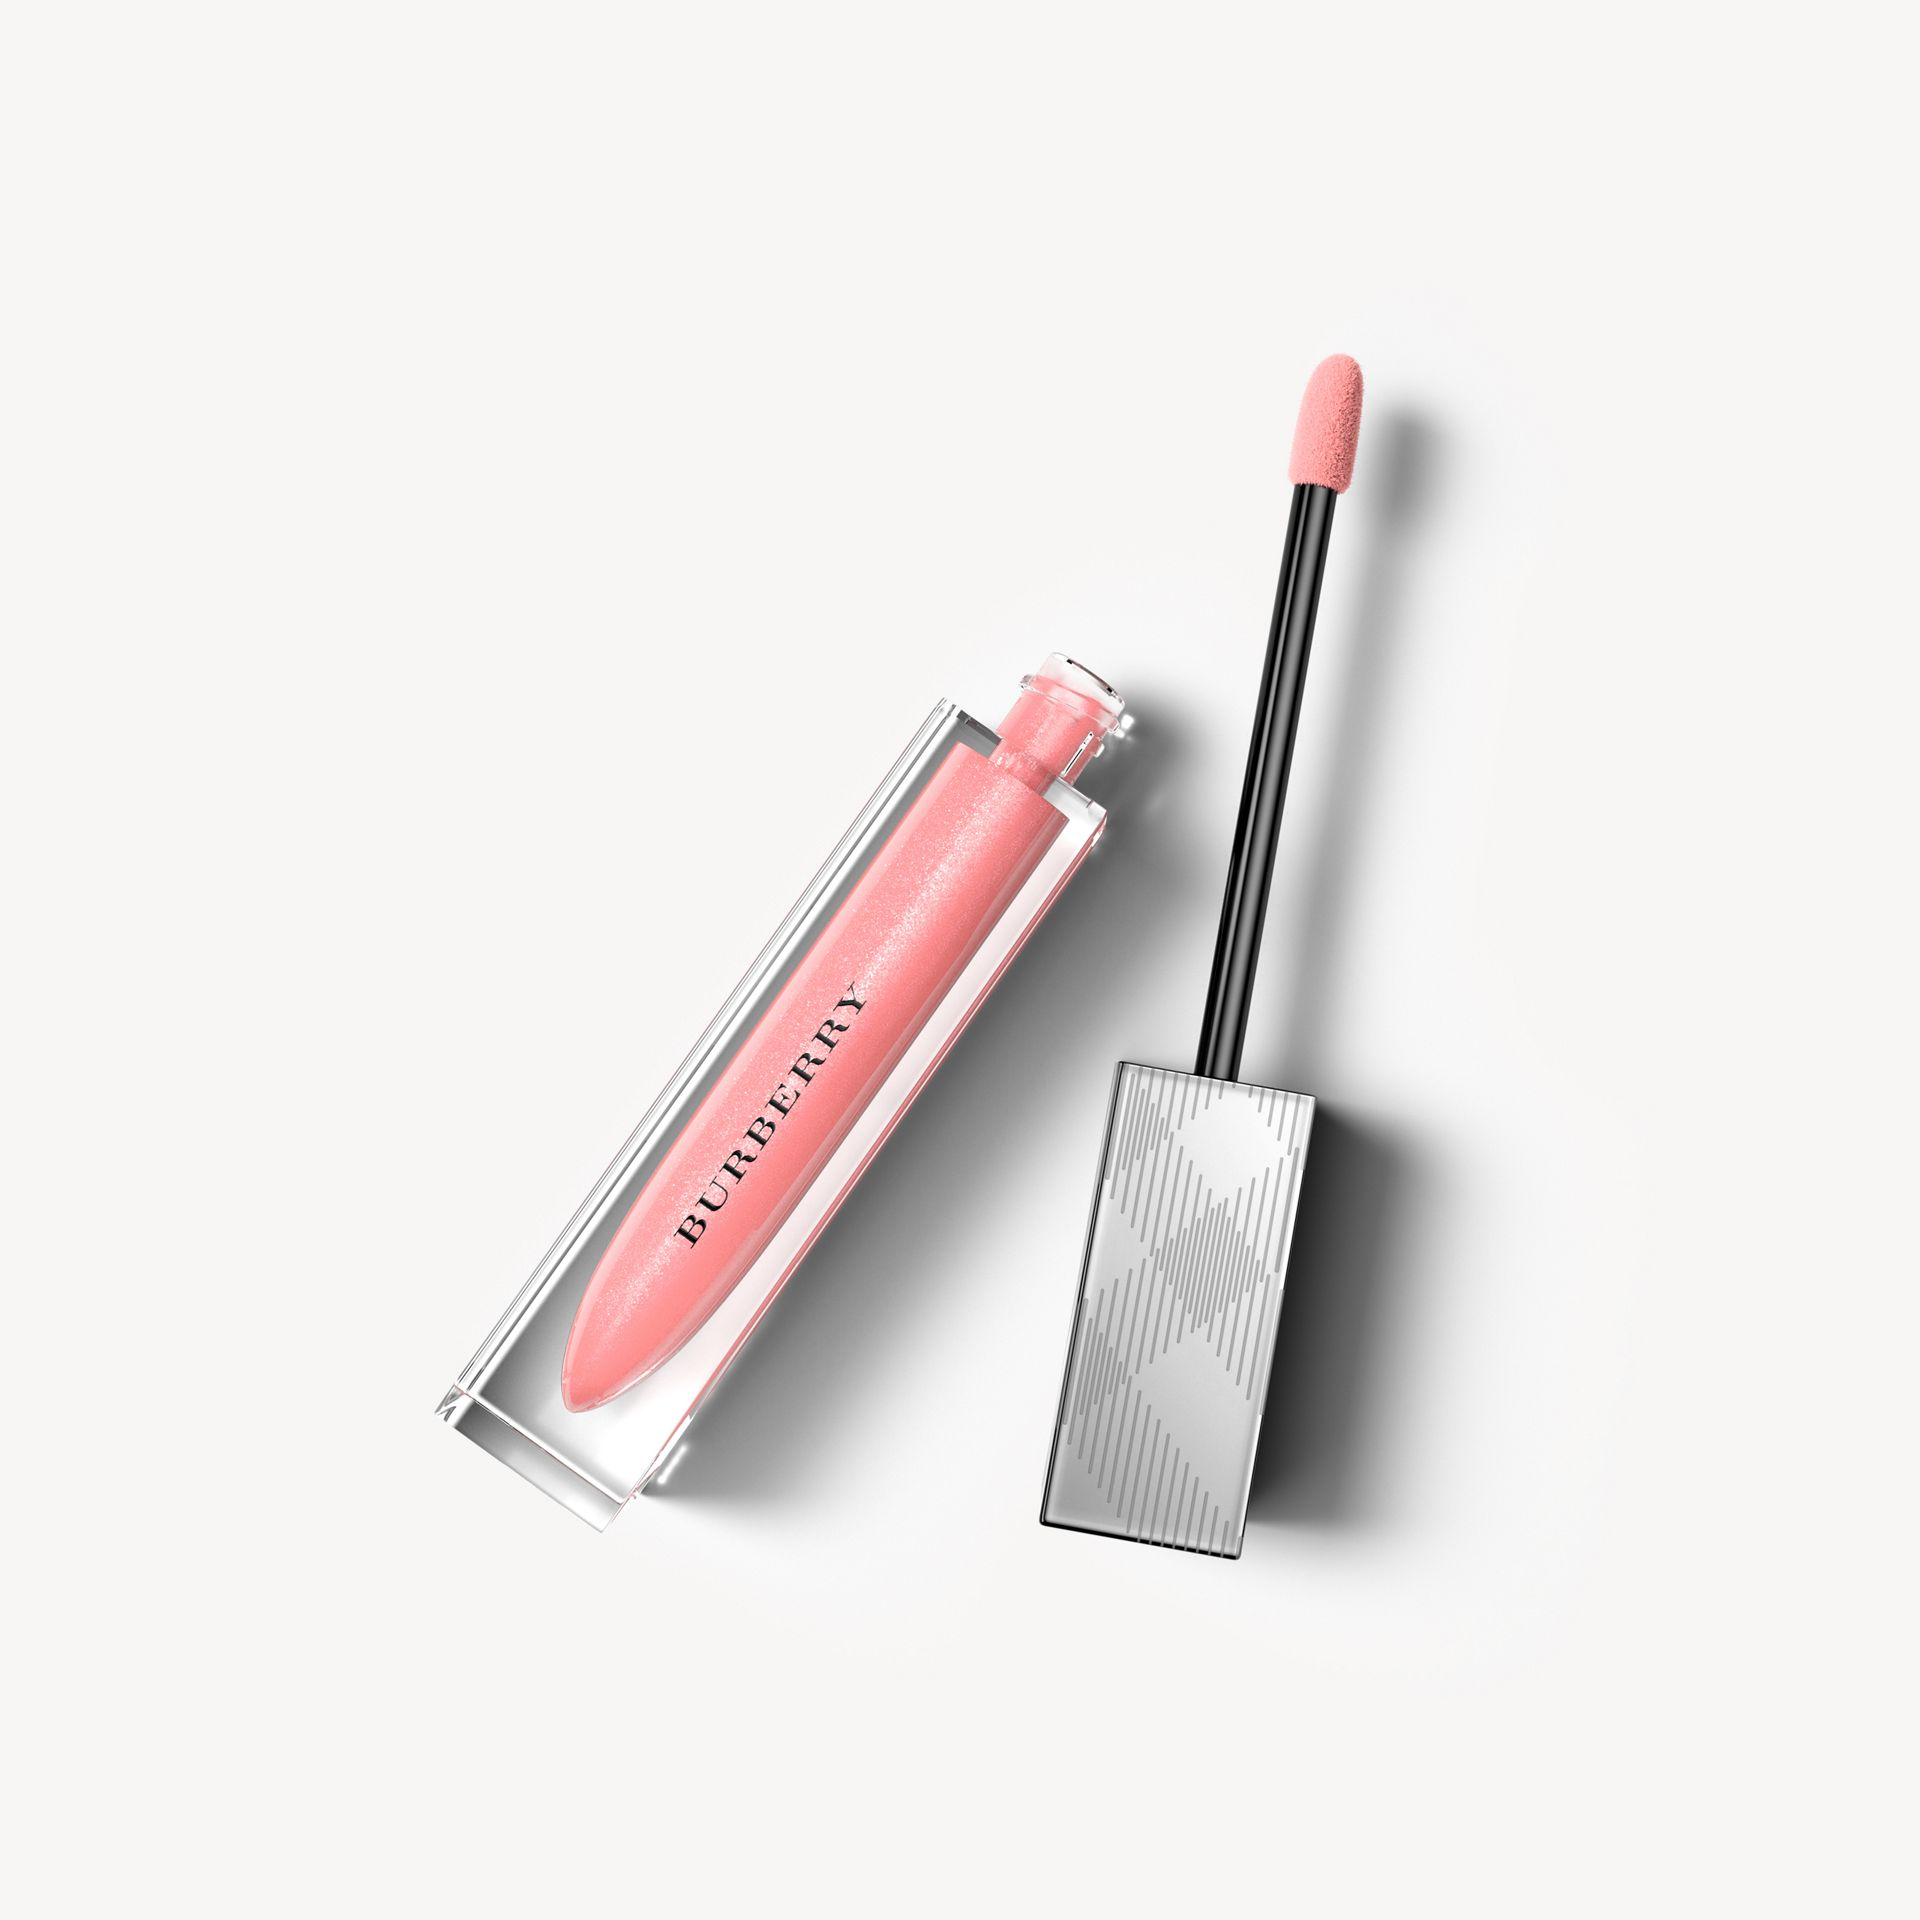 Burberry Kisses Gloss - Nude Pink No.25 - gallery image 1